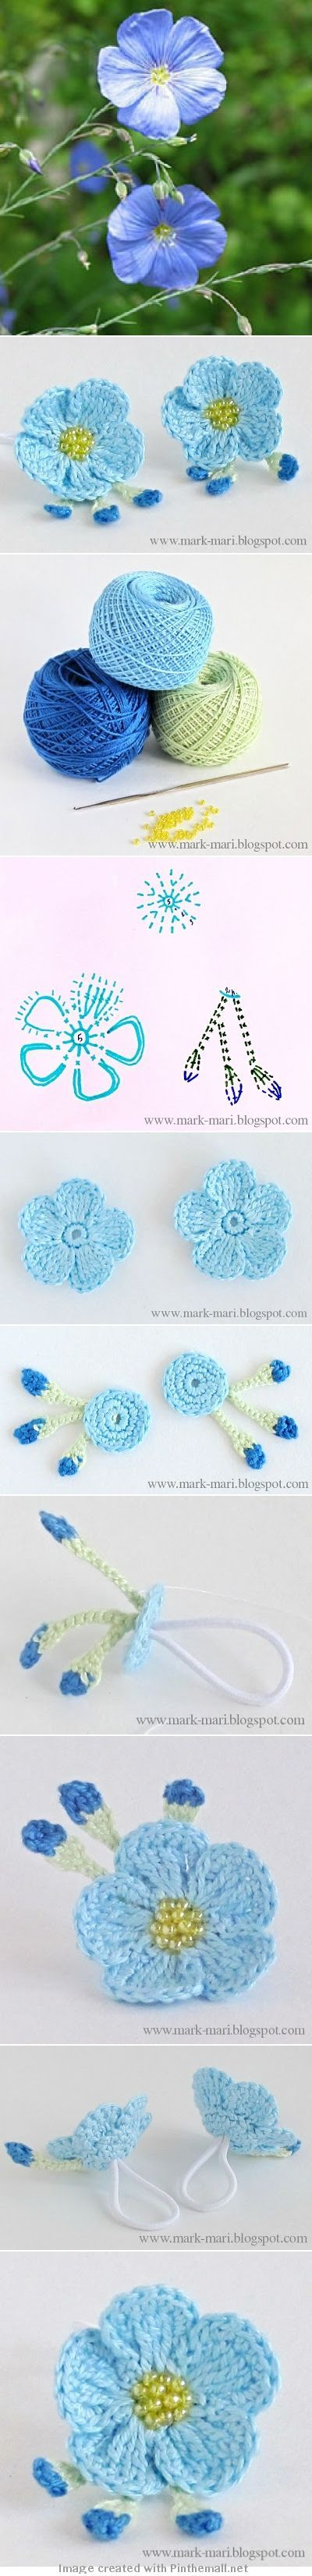 Crochet Poppy - Very pretty el